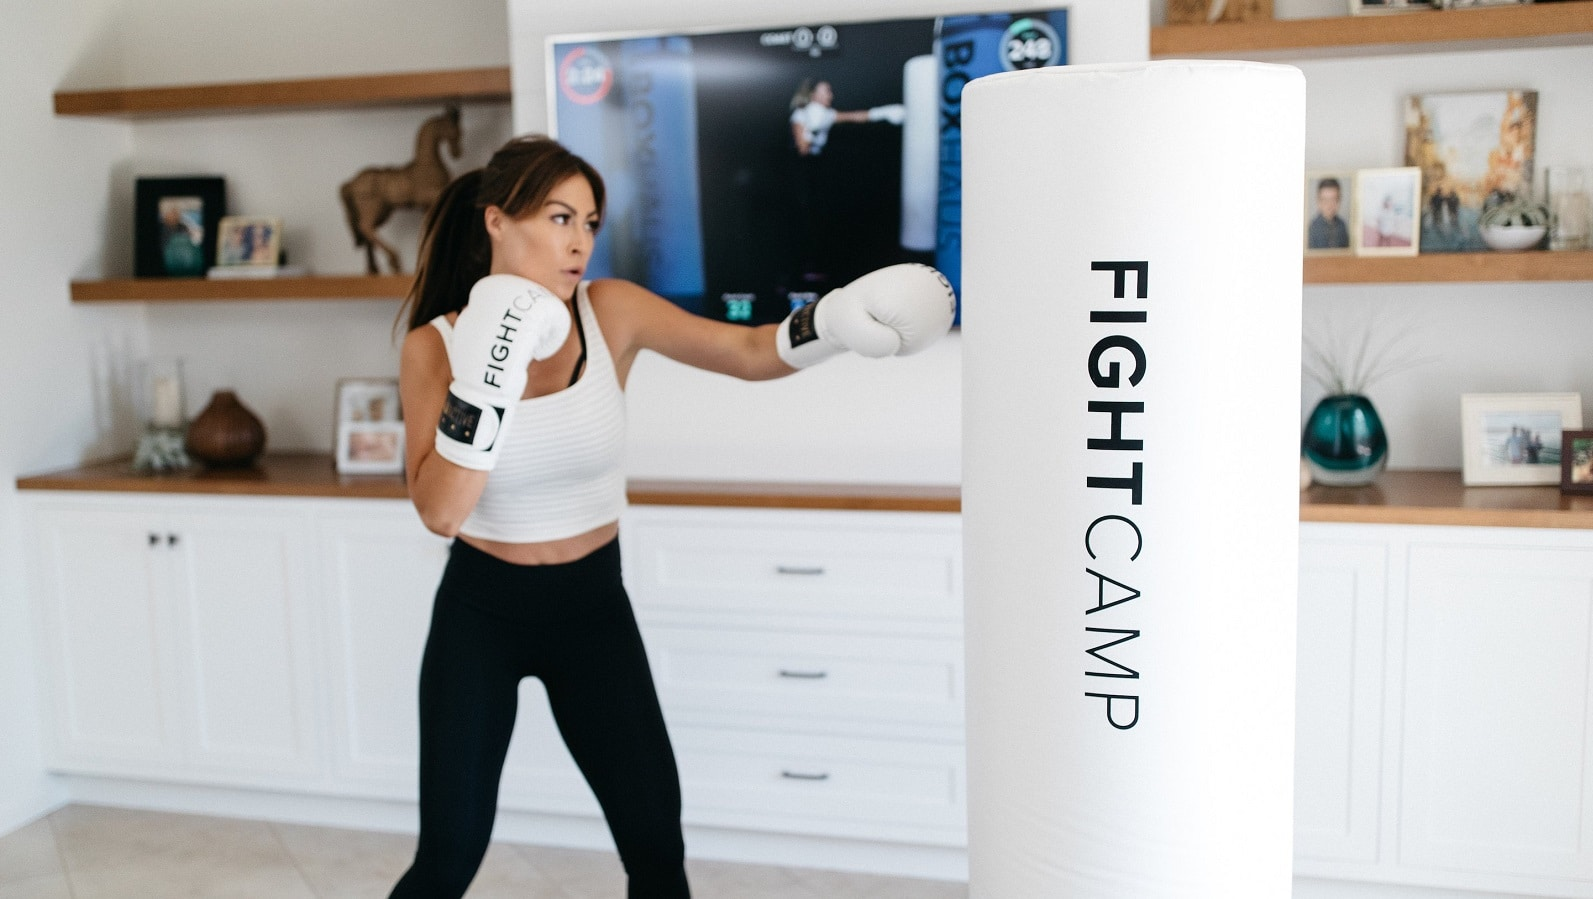 person using fightcamp in bedroom